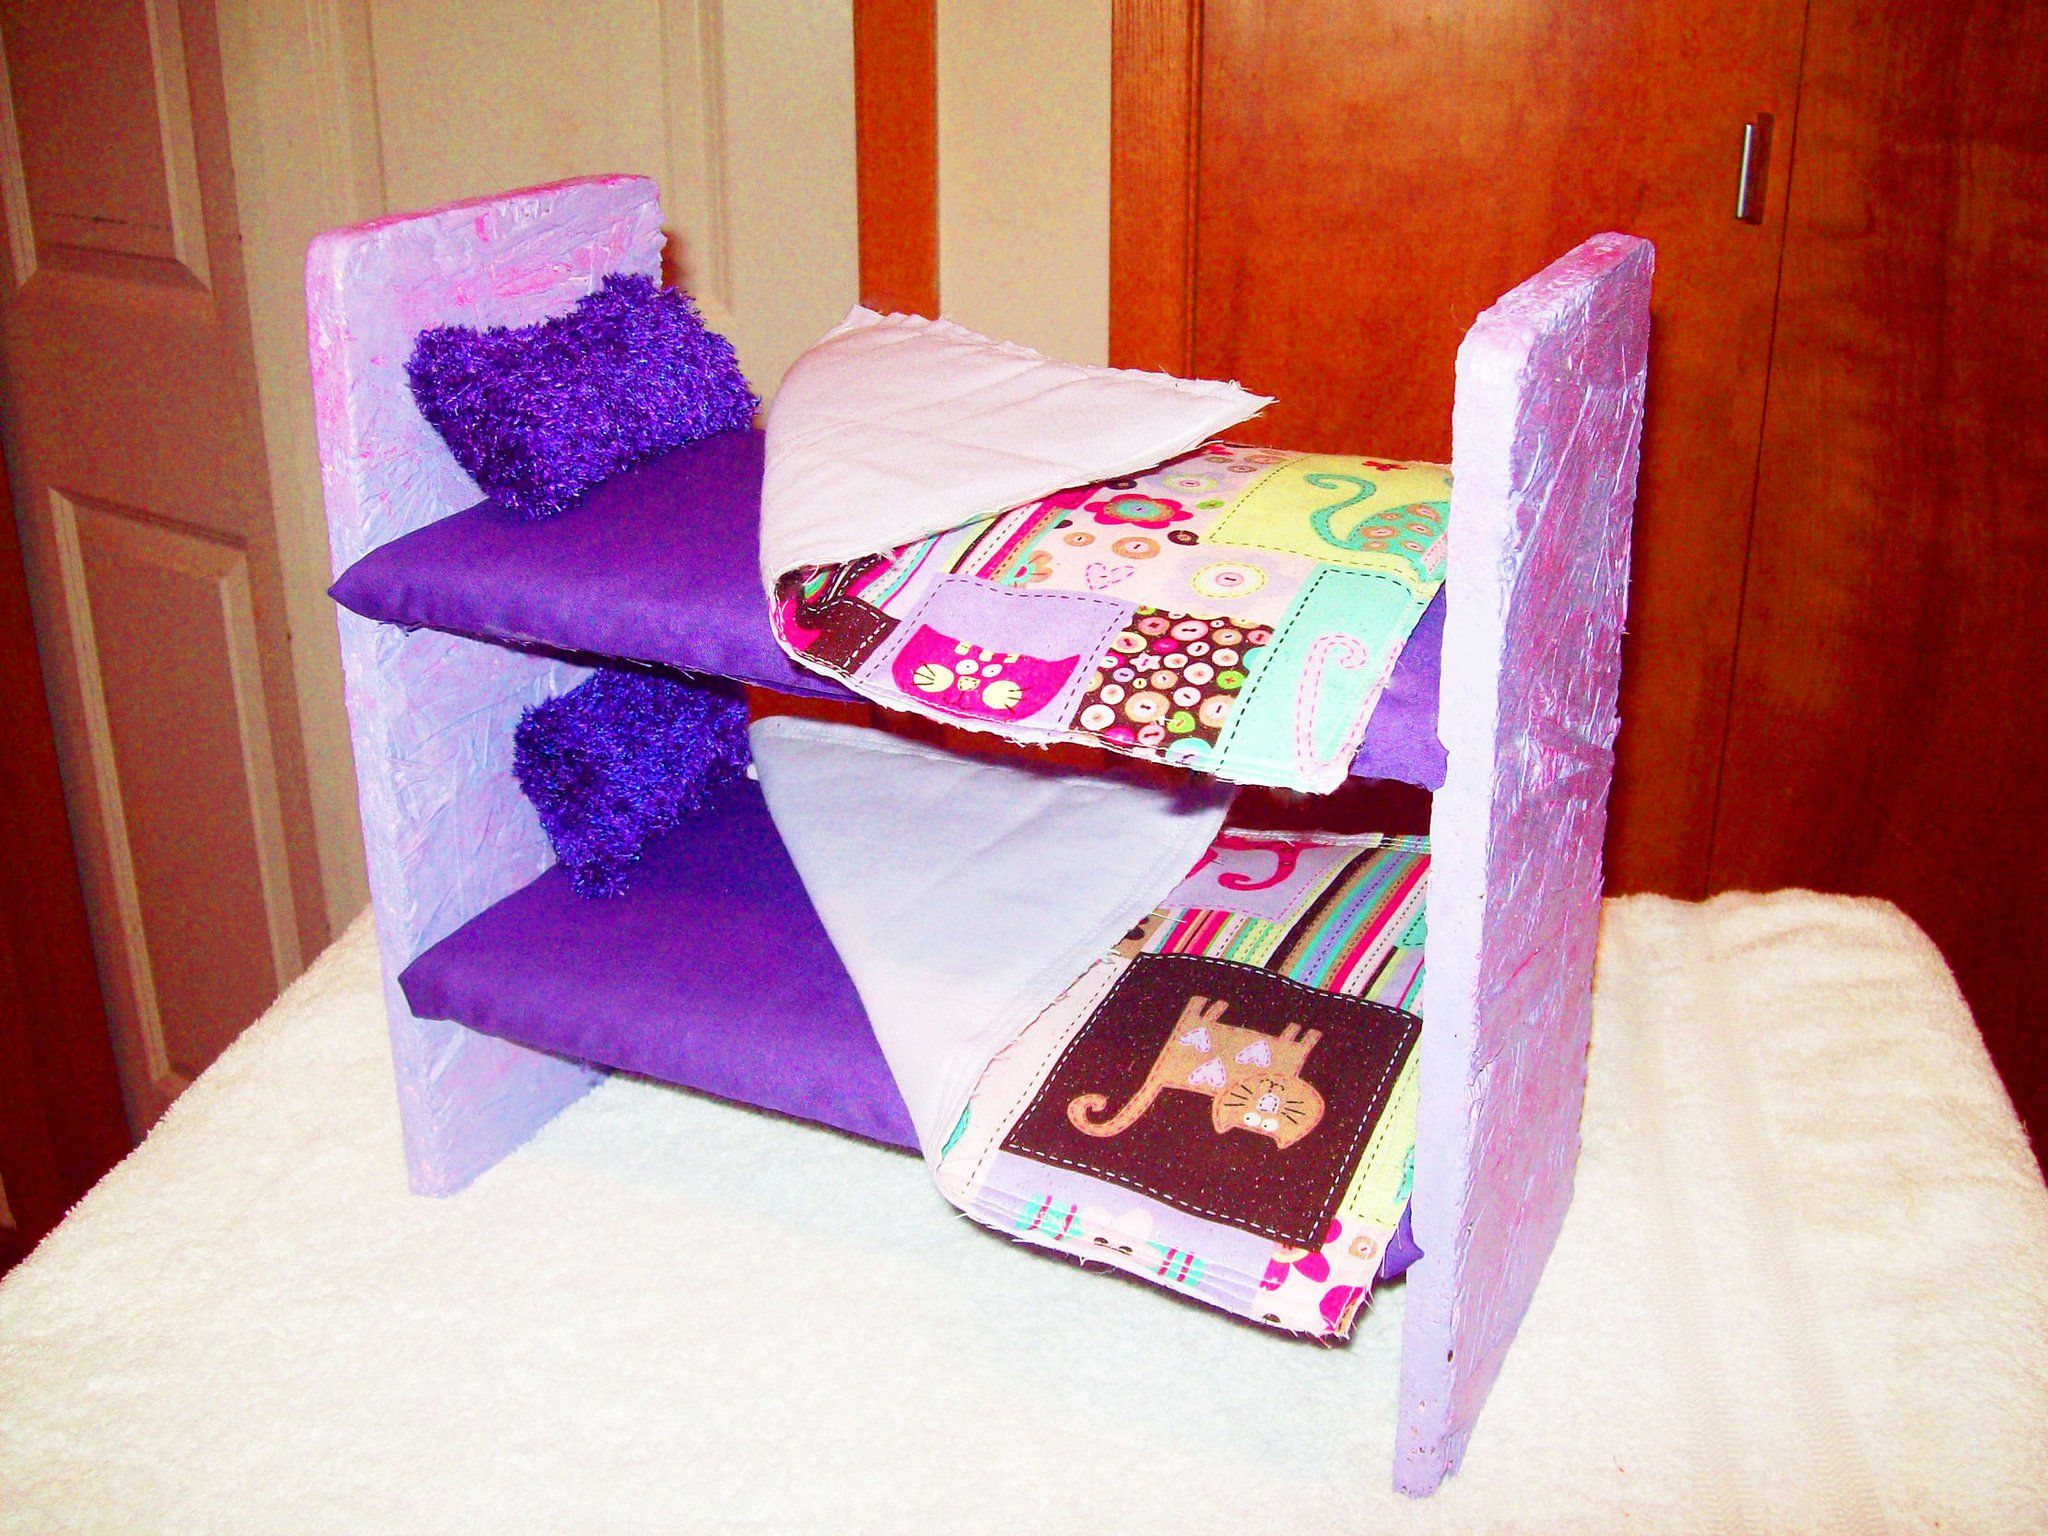 diy barbie dollhouse furniture. Barbie Bunk Bed Made This For My Daughter Out Of Wood Nails Cotton Diy Dollhouse Furniture N